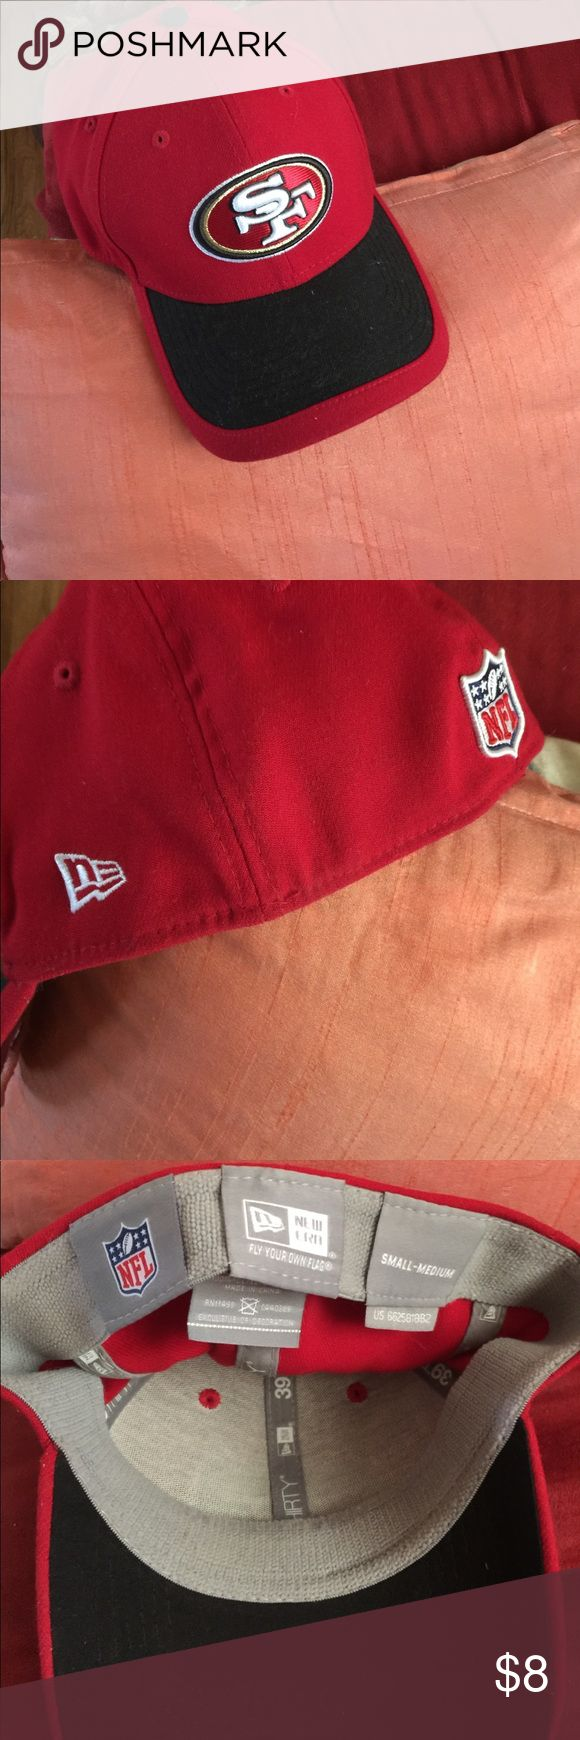 San Francisco 49er football Cap Never Worn For NINER FANS, Good quality elastic band true logo cap purchased at a game in their Shoppe NFL-New Era Accessories Hats